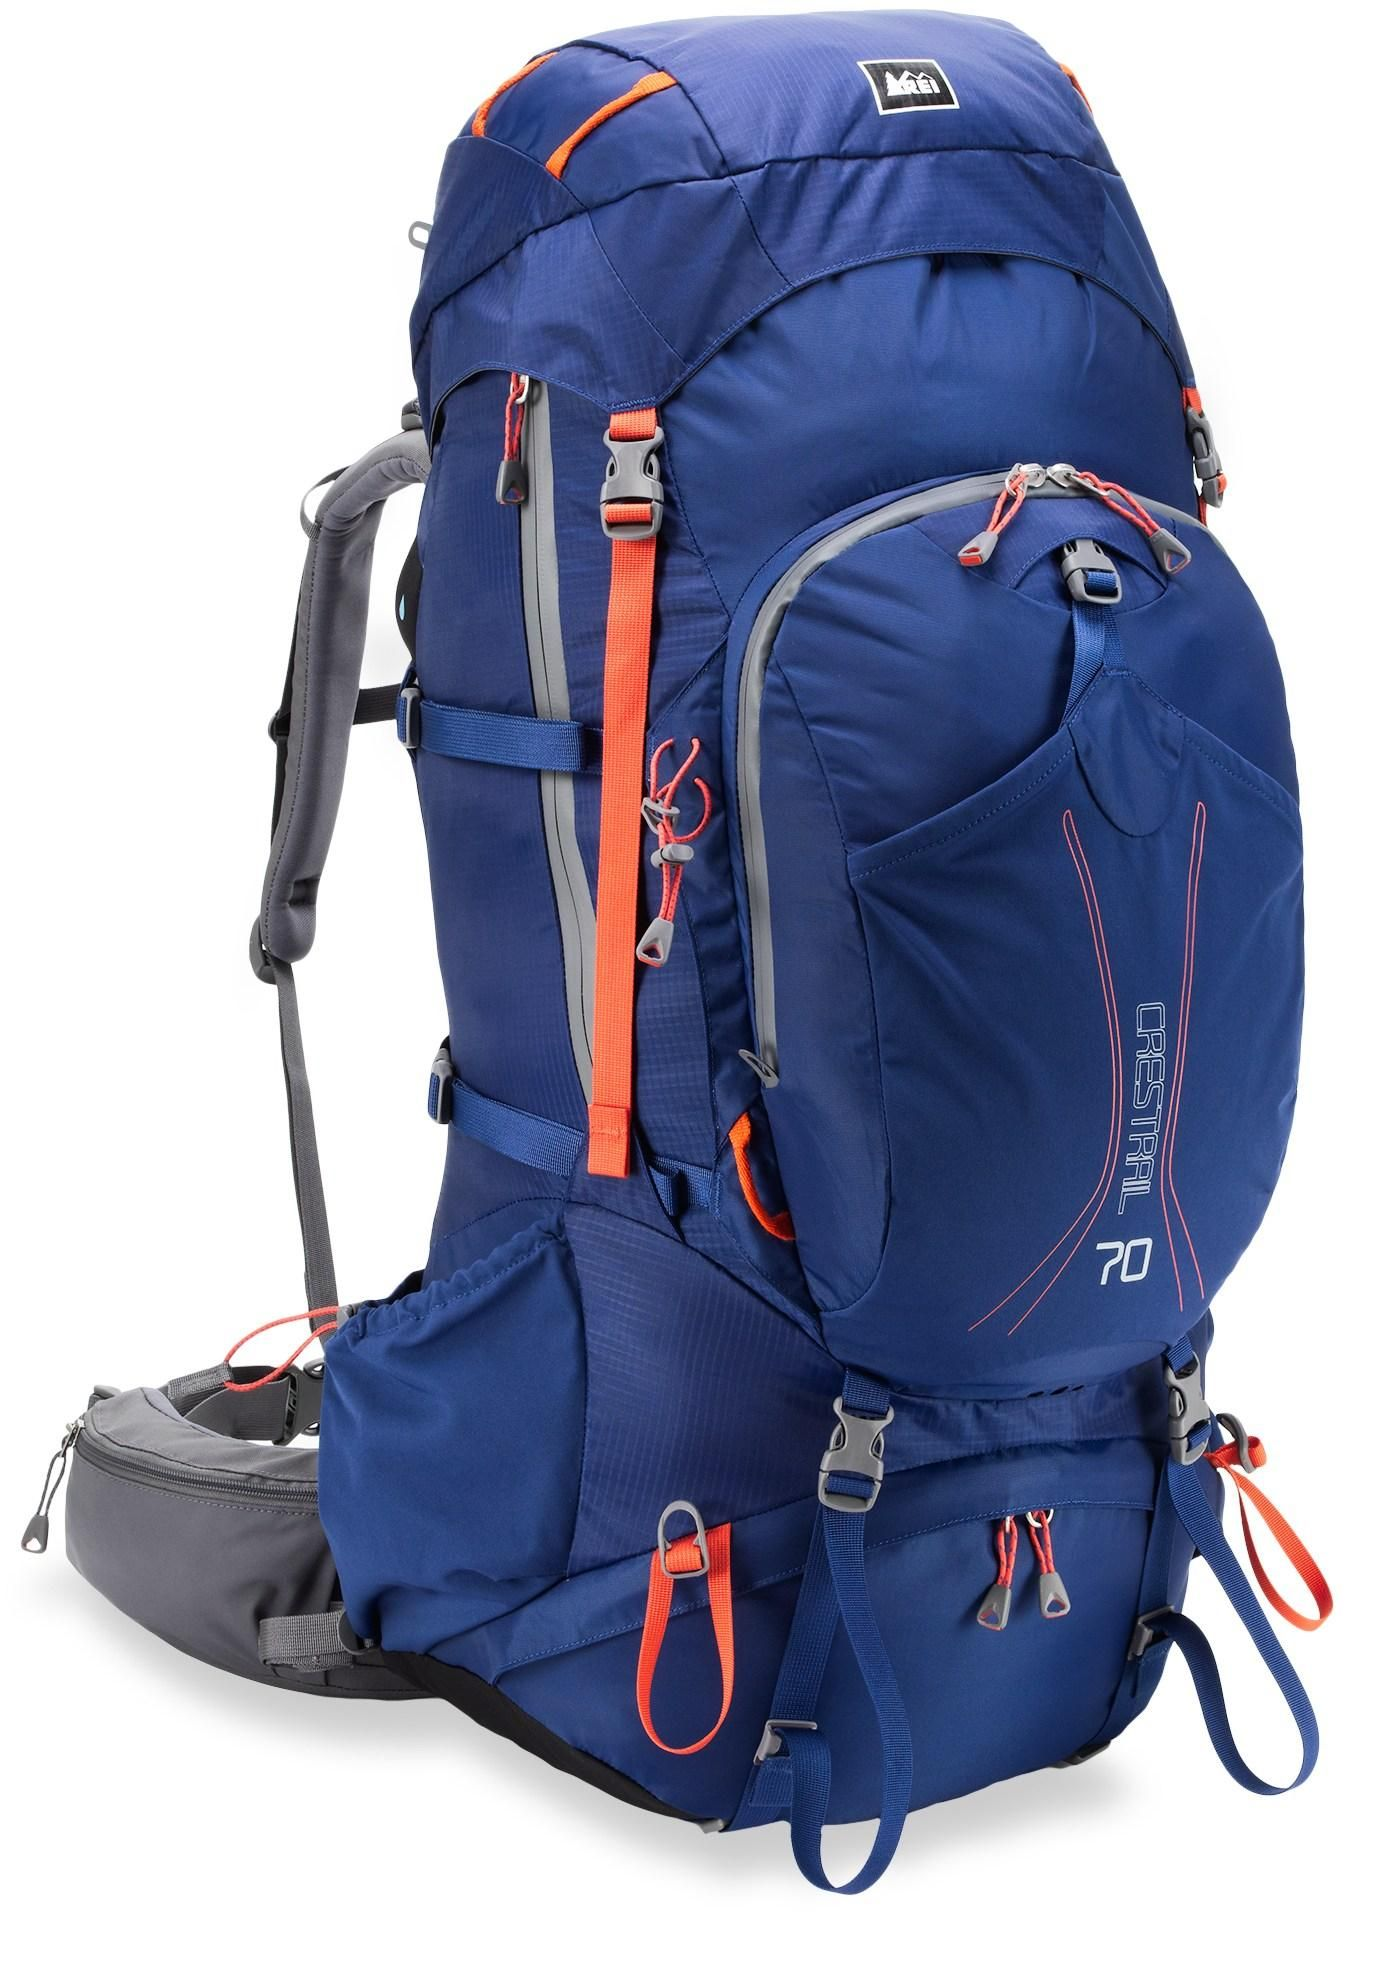 Crestrail 70 Pack Camping gear, Backpacking for